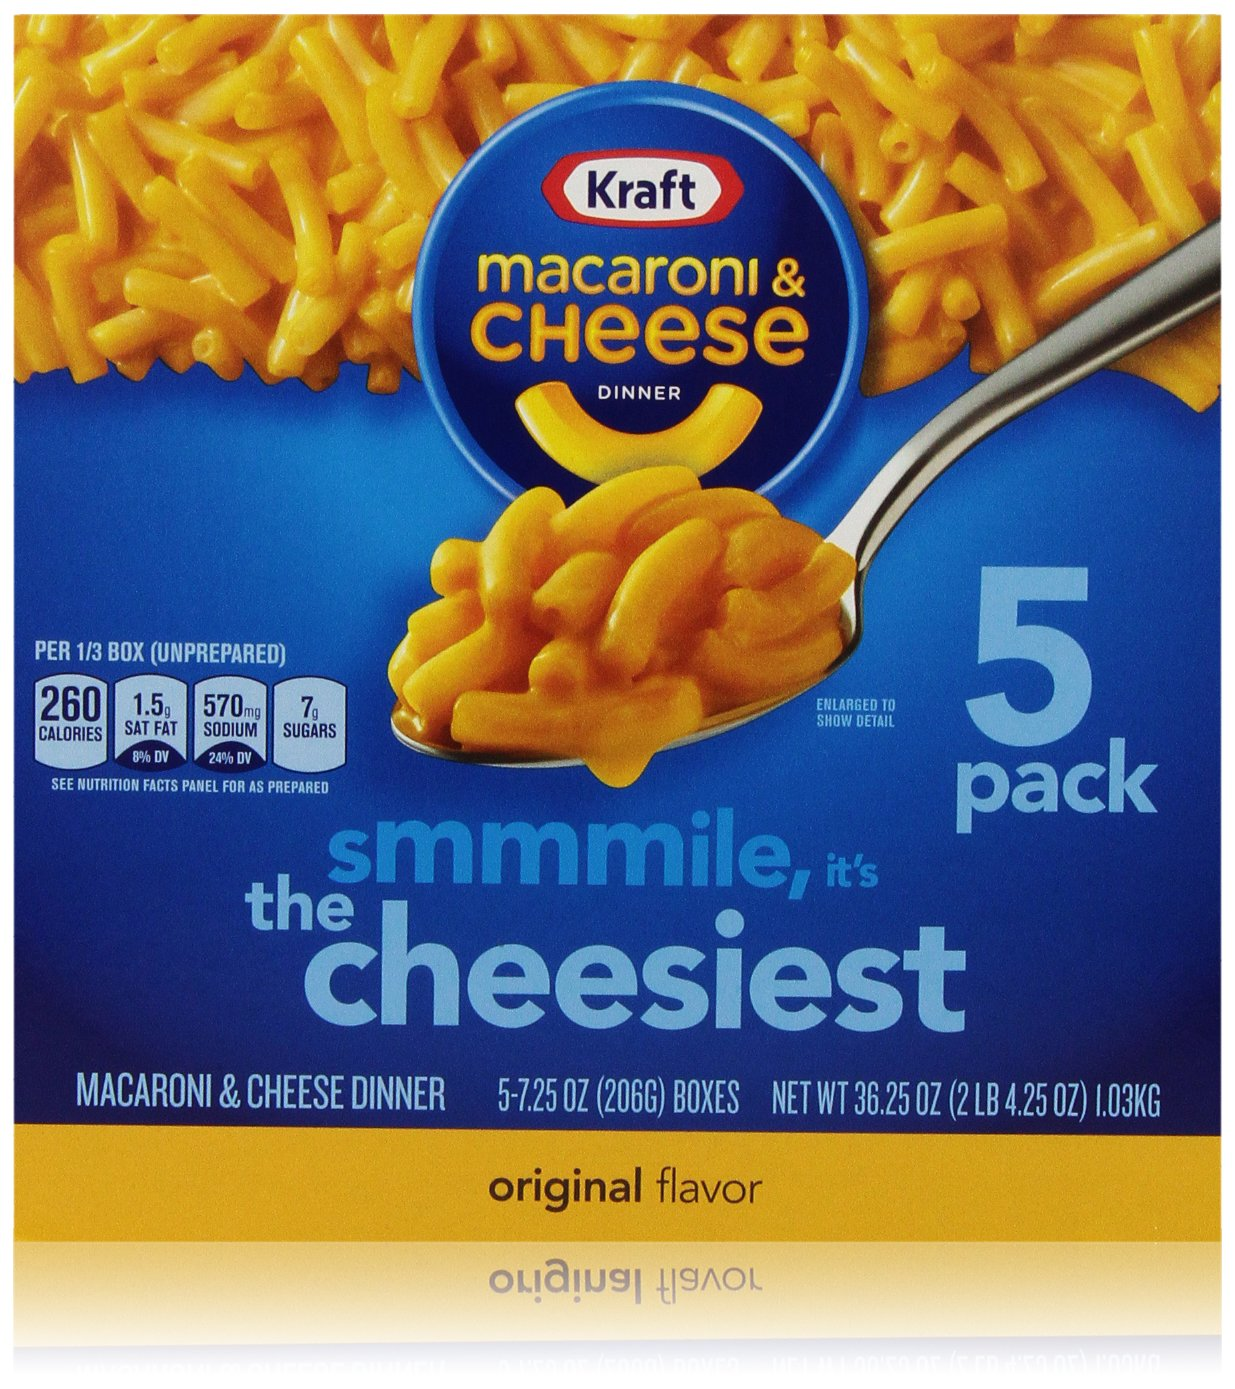 Kraft Original Flavor Macaroni and Cheese Meal (7.25 oz Boxes, Pack of 5)